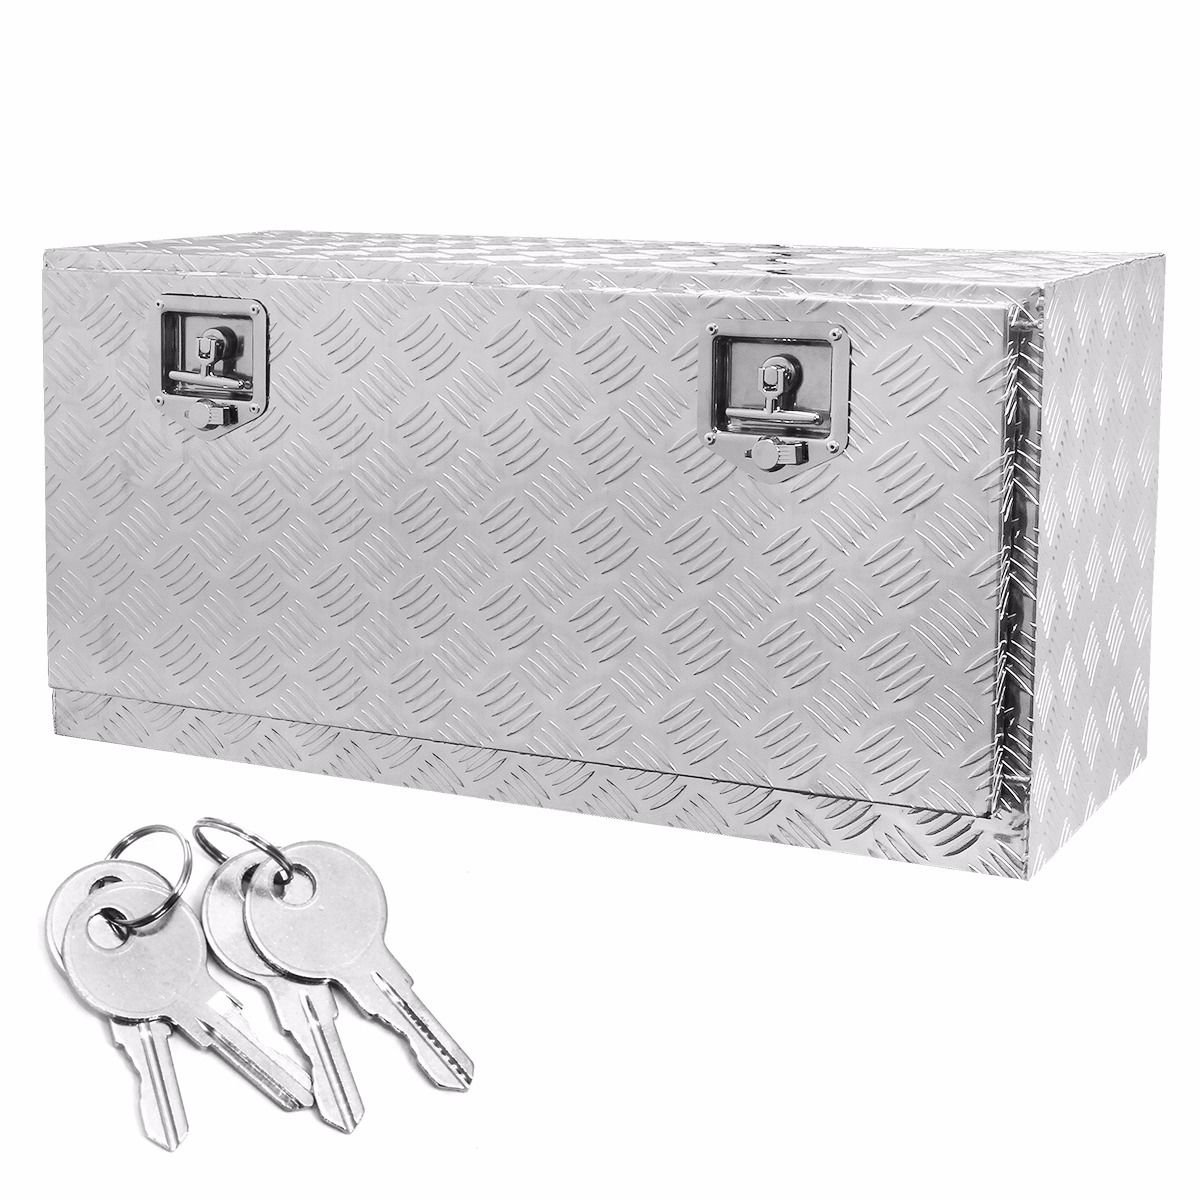 36'' Aluminum Truck Underbody Tool Box Trailer RV Tool Storage Under Bed w/Lock by Tamsun